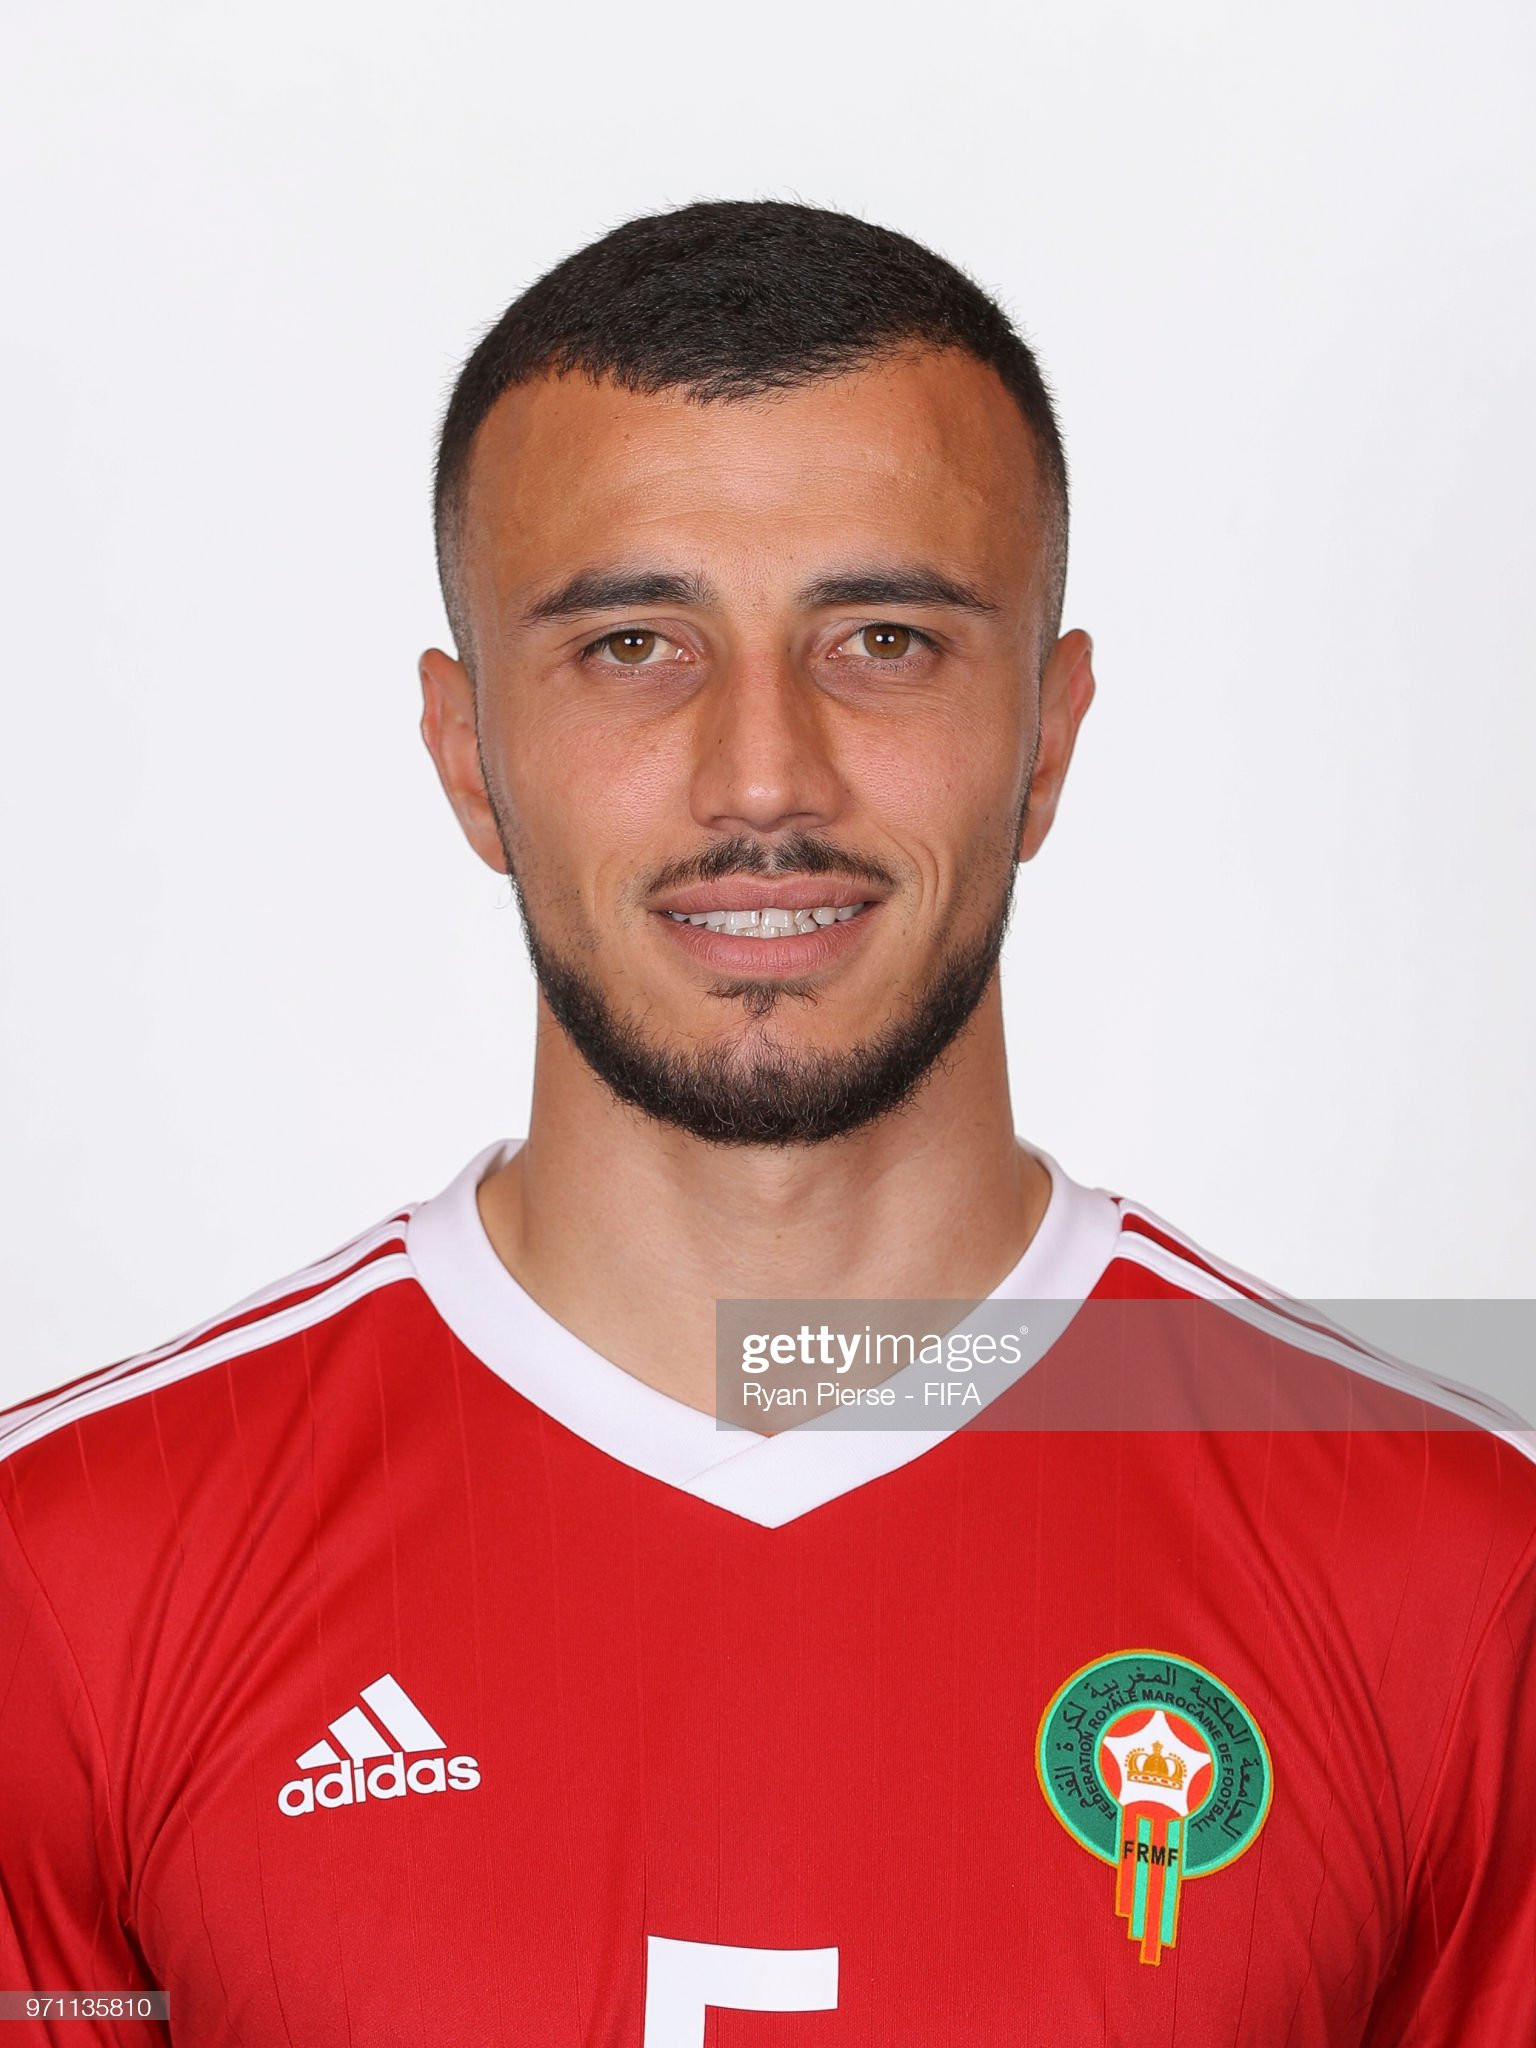 Norteafricanos Romain-saiss-of-morocco-poses-during-the-official-fifa-world-cup-2018-picture-id971135810?s=2048x2048